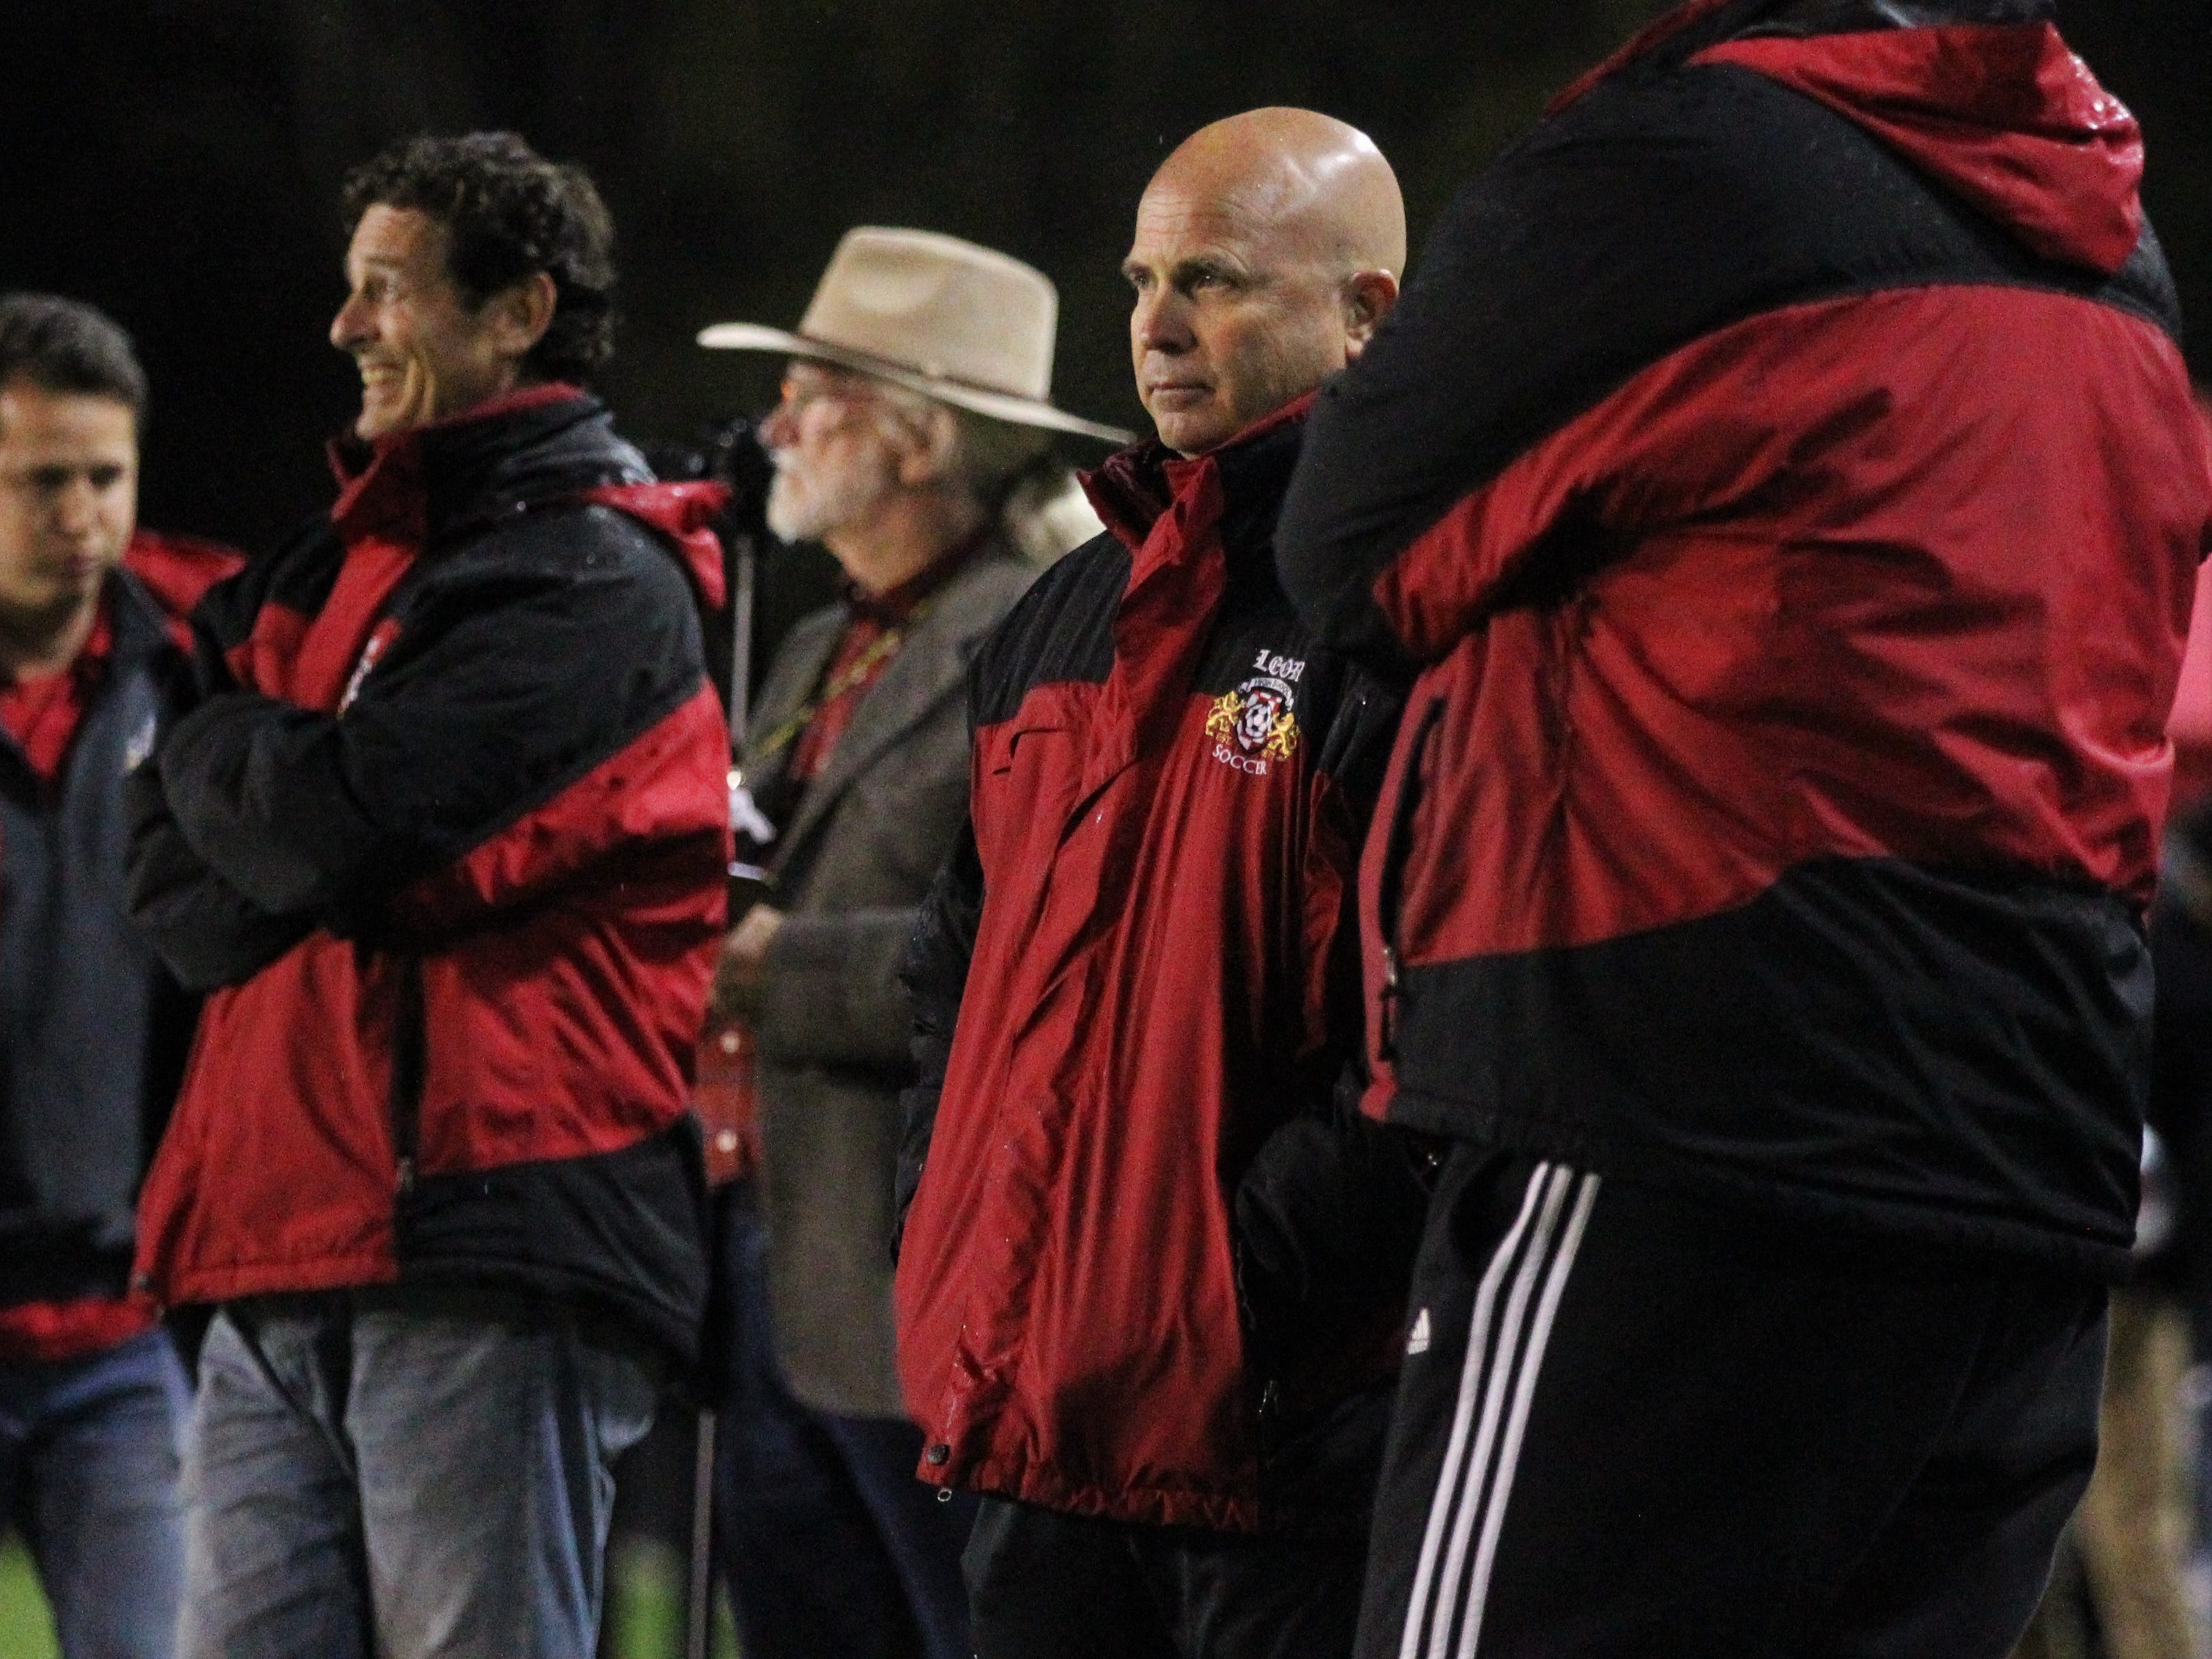 Leon girls soccer coach Tony Kidd watches from the sidelines during the Lions' 2-1 win over Lincoln on Friday to capture a fifth-straight district title.